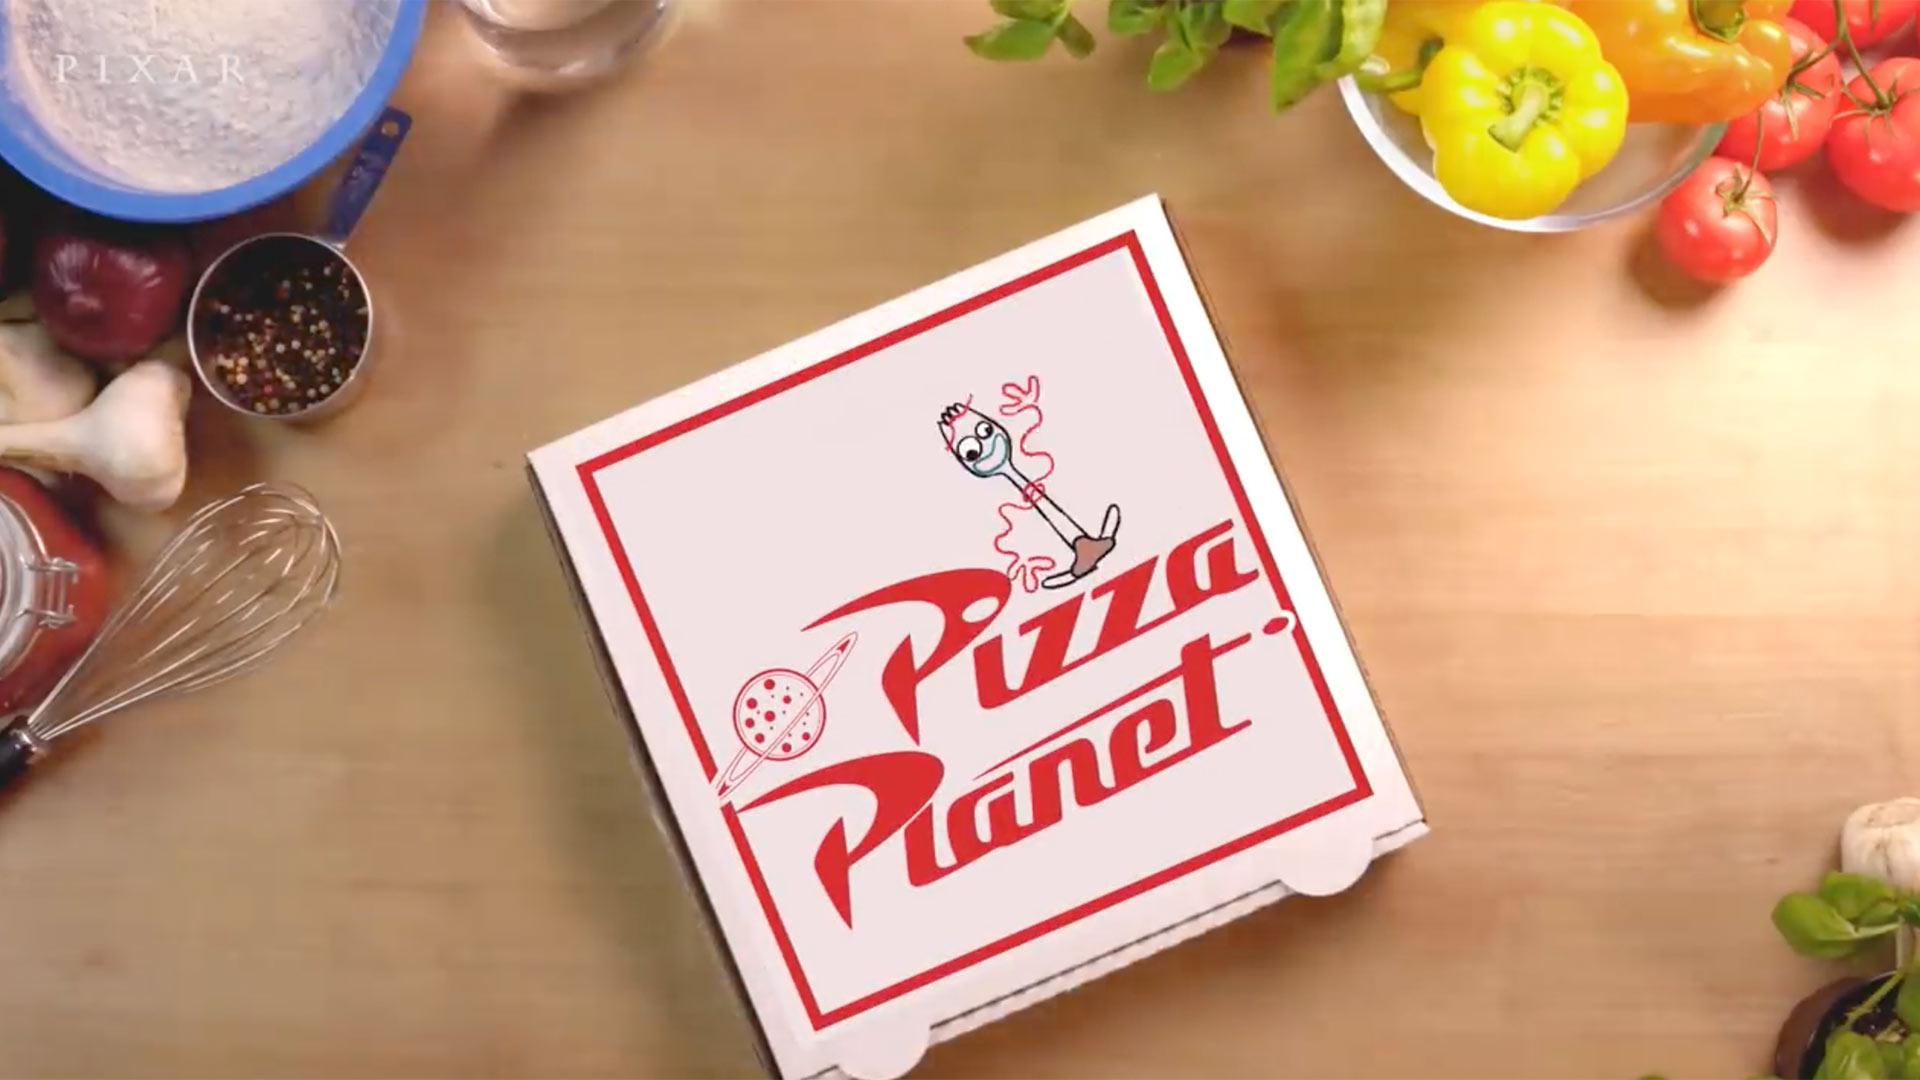 Pixar pizza